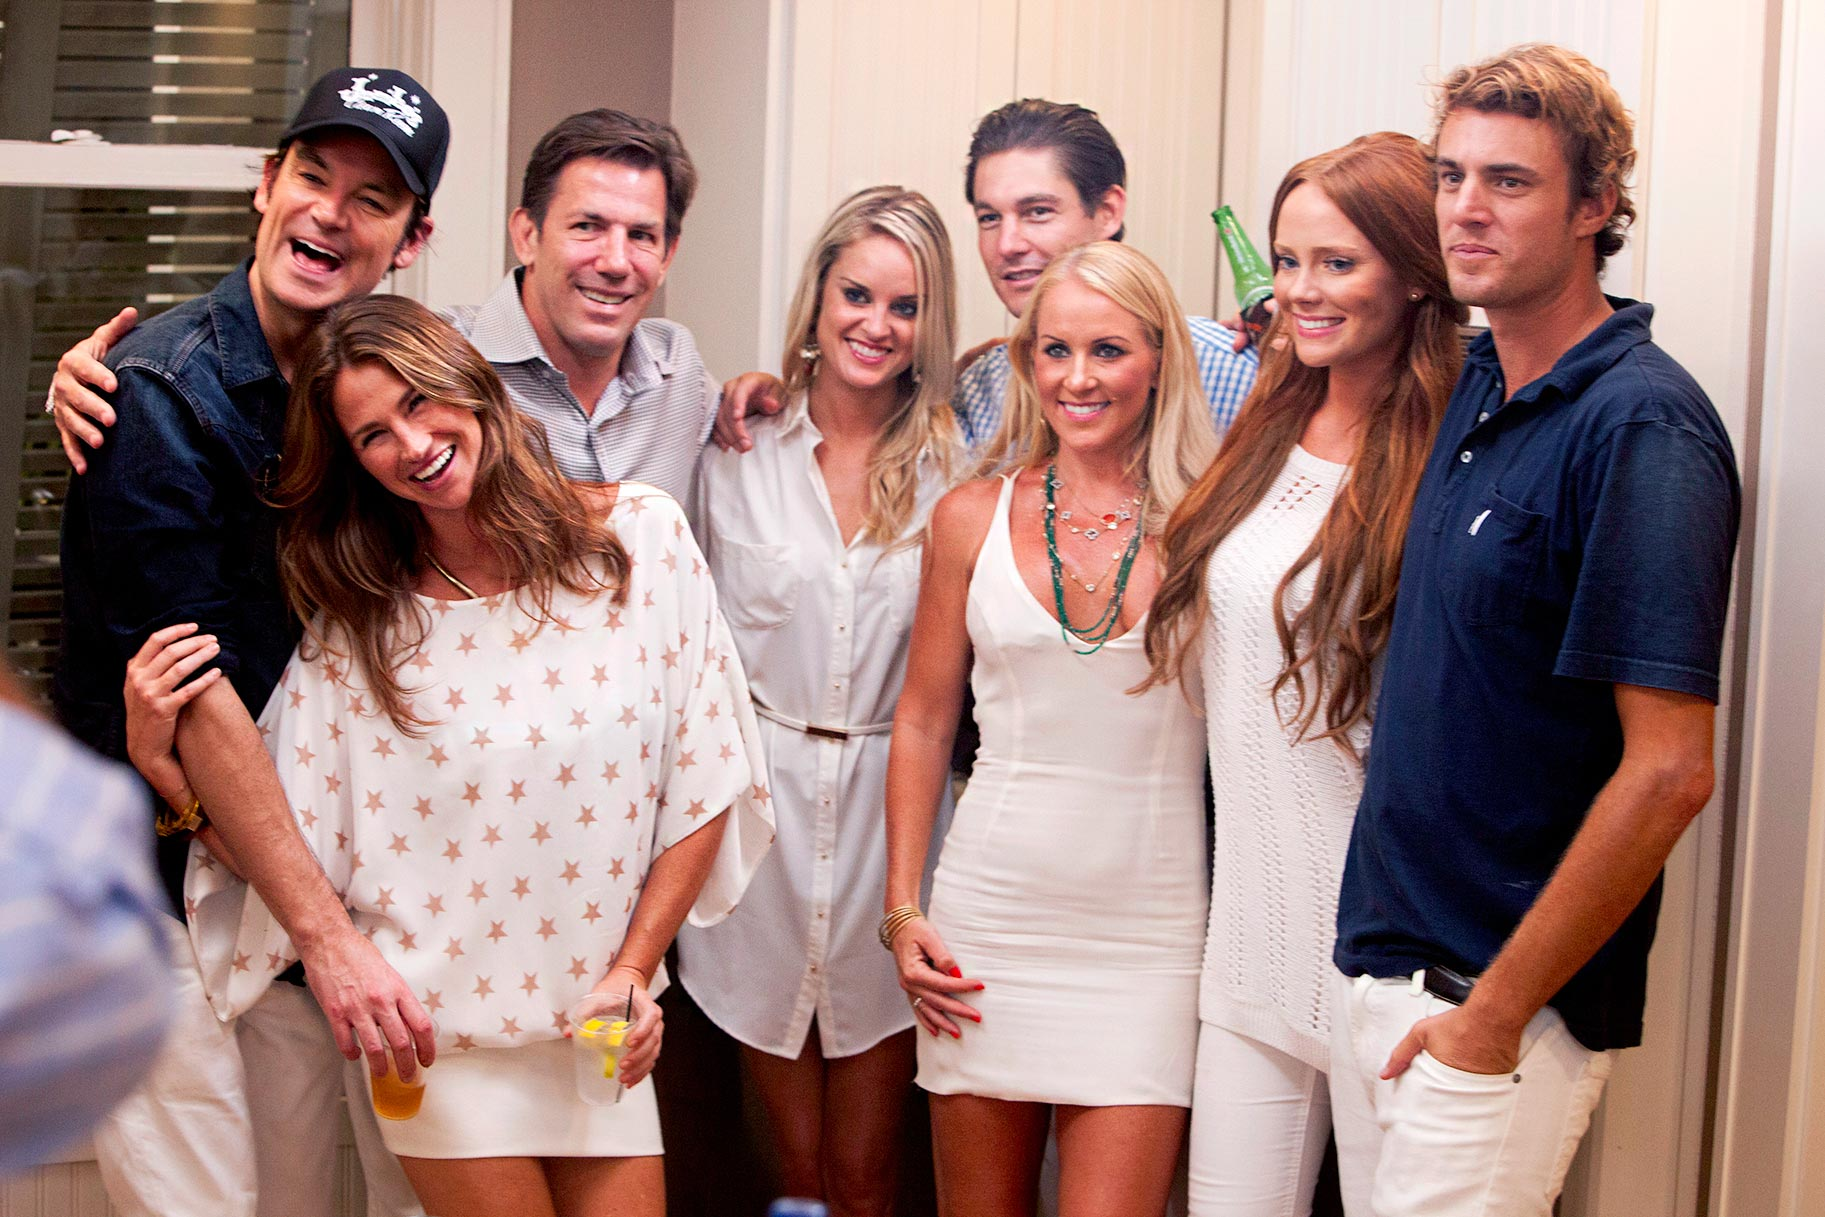 Austin and chelsea still dating southern charm